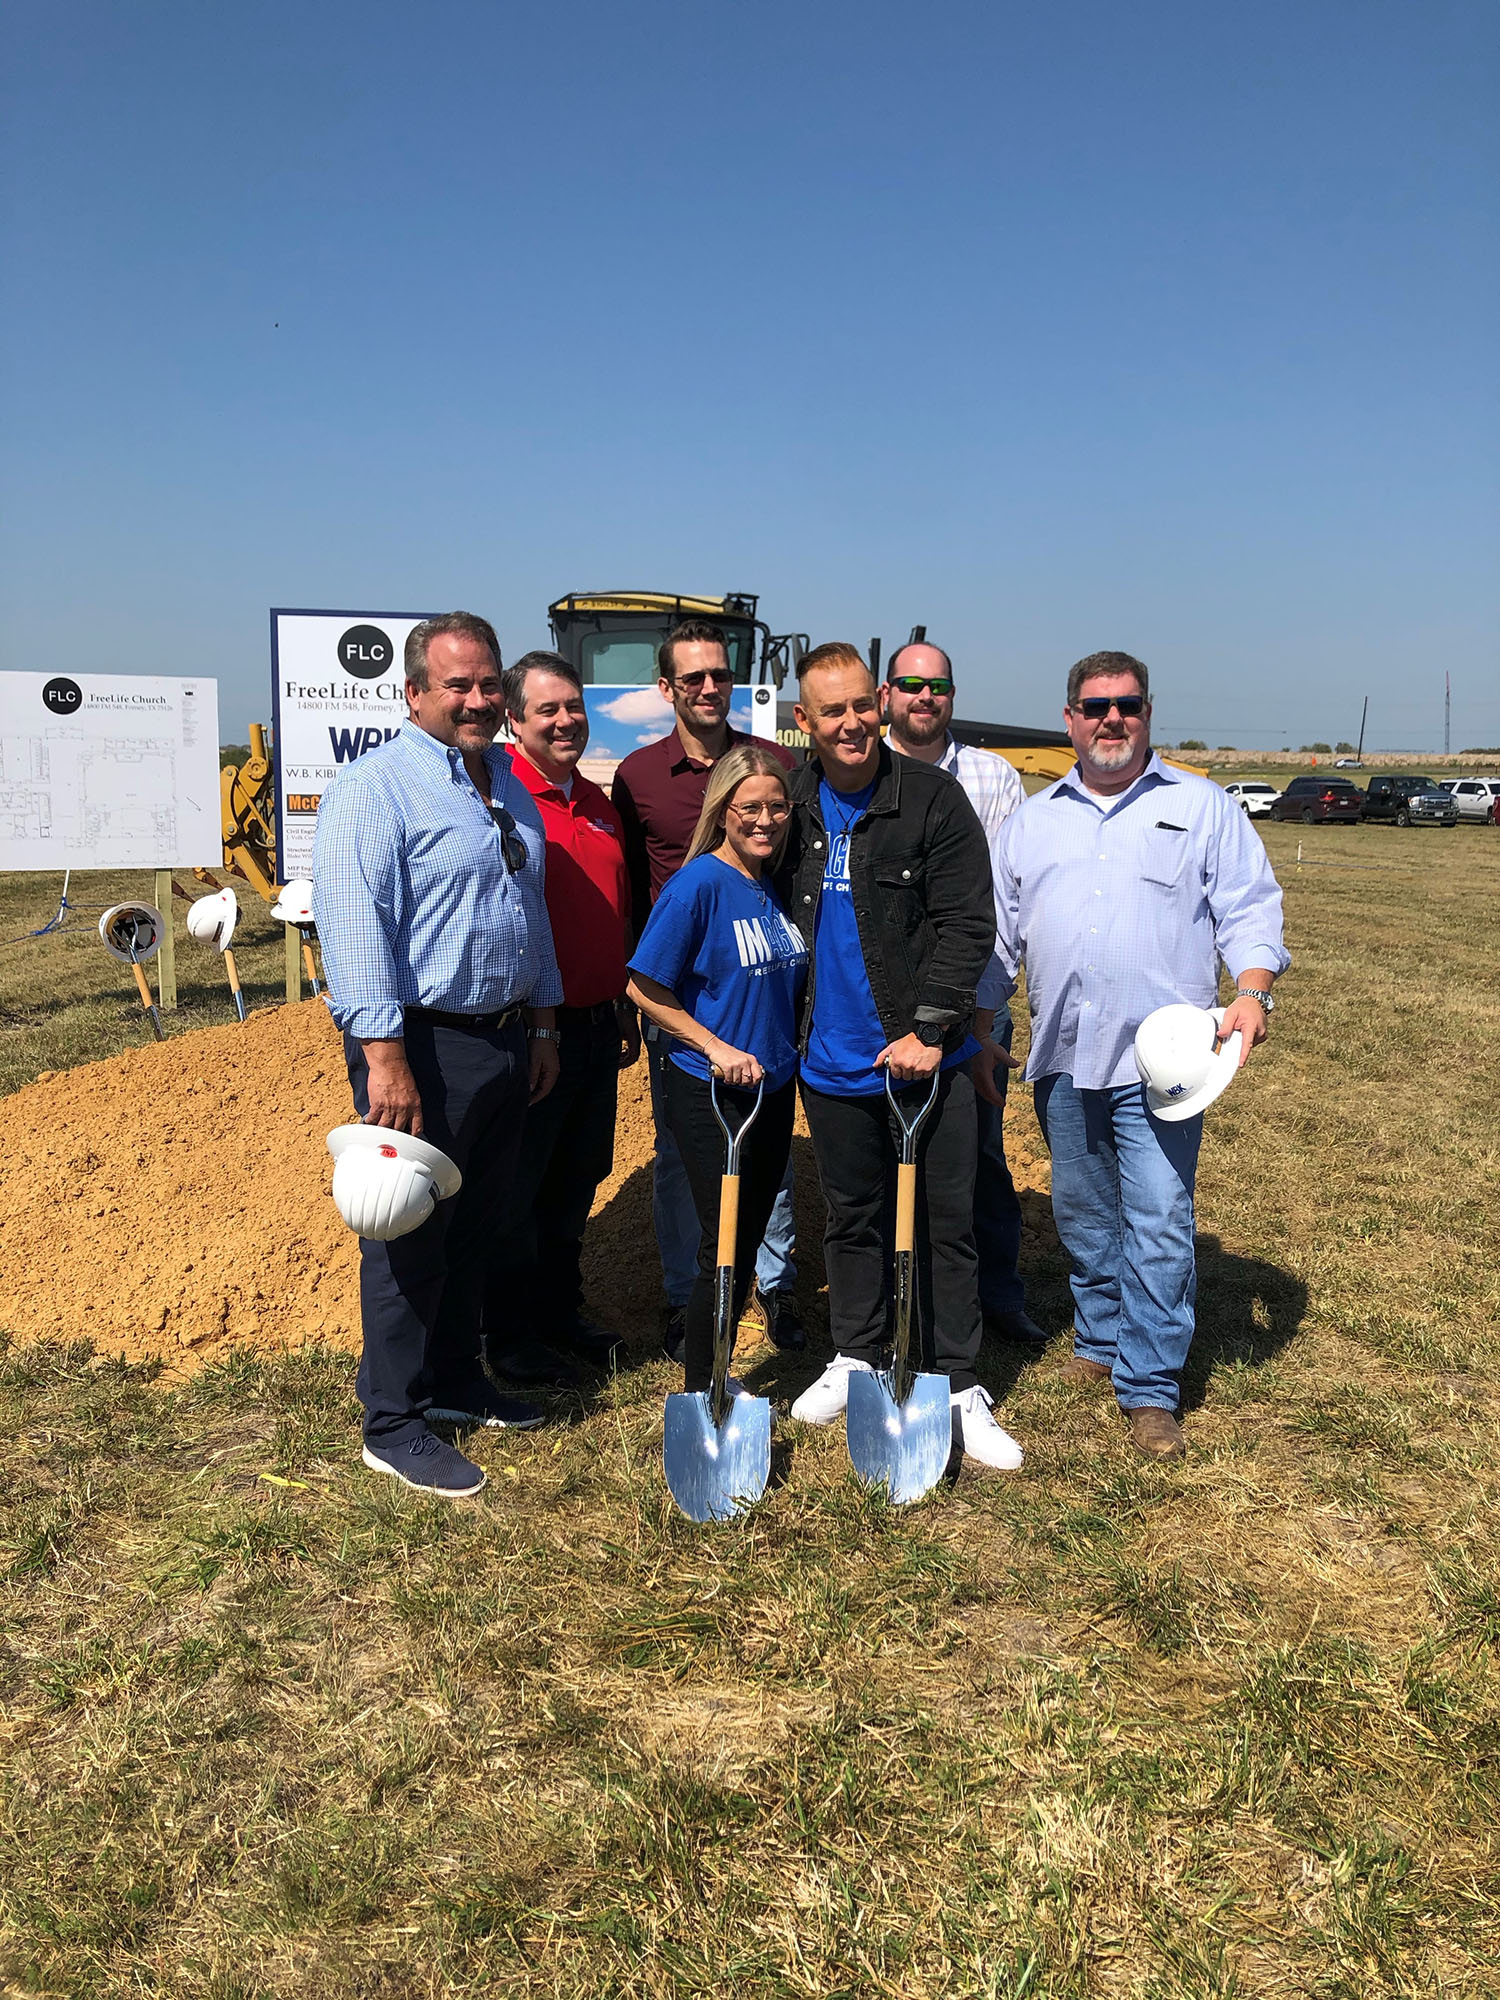 FreeLife Church Groundbreaking